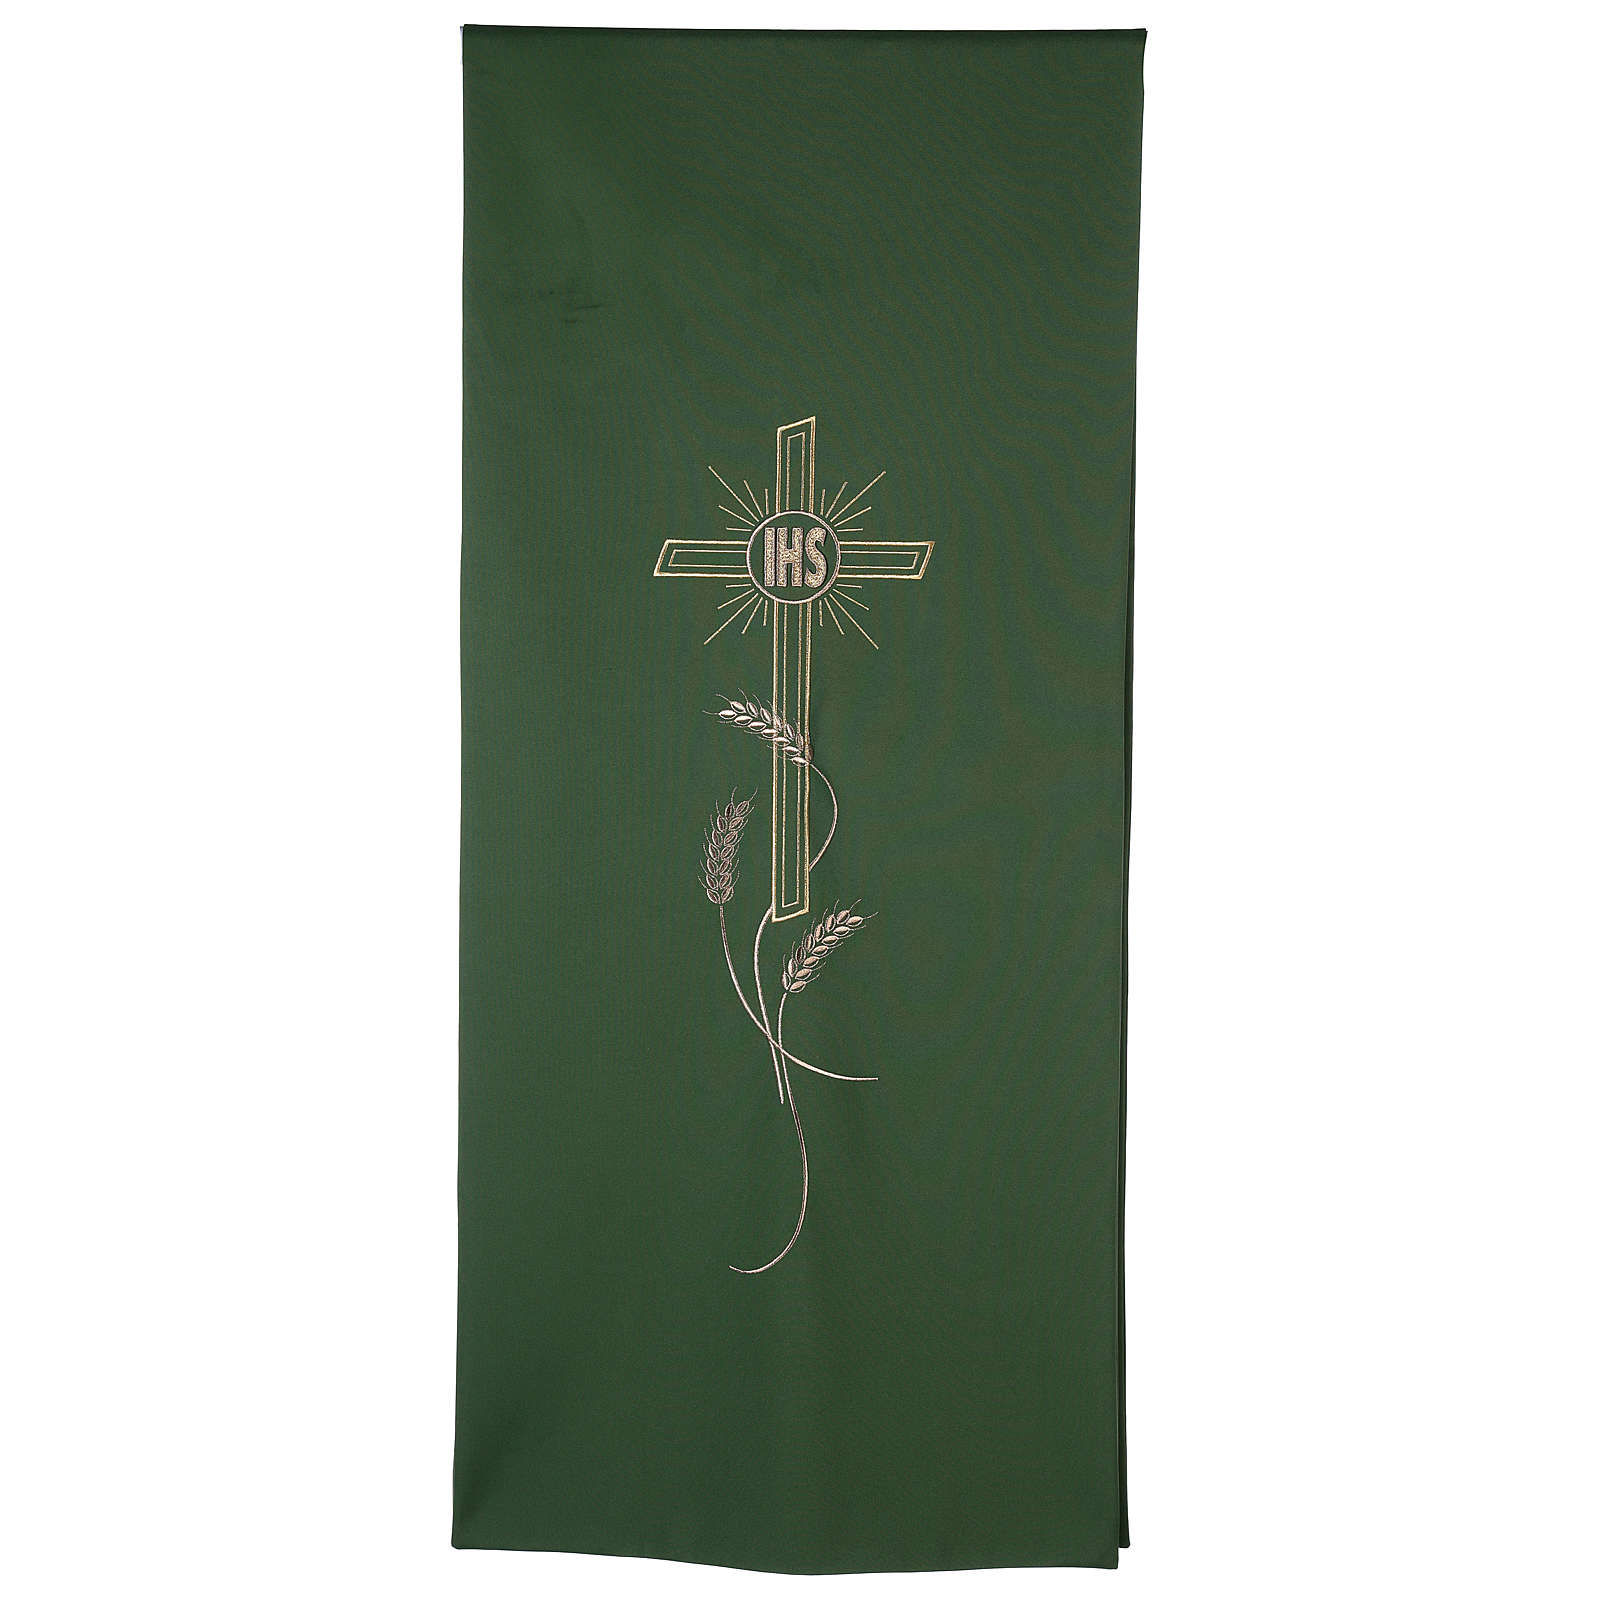 IHS pulpit cover 4